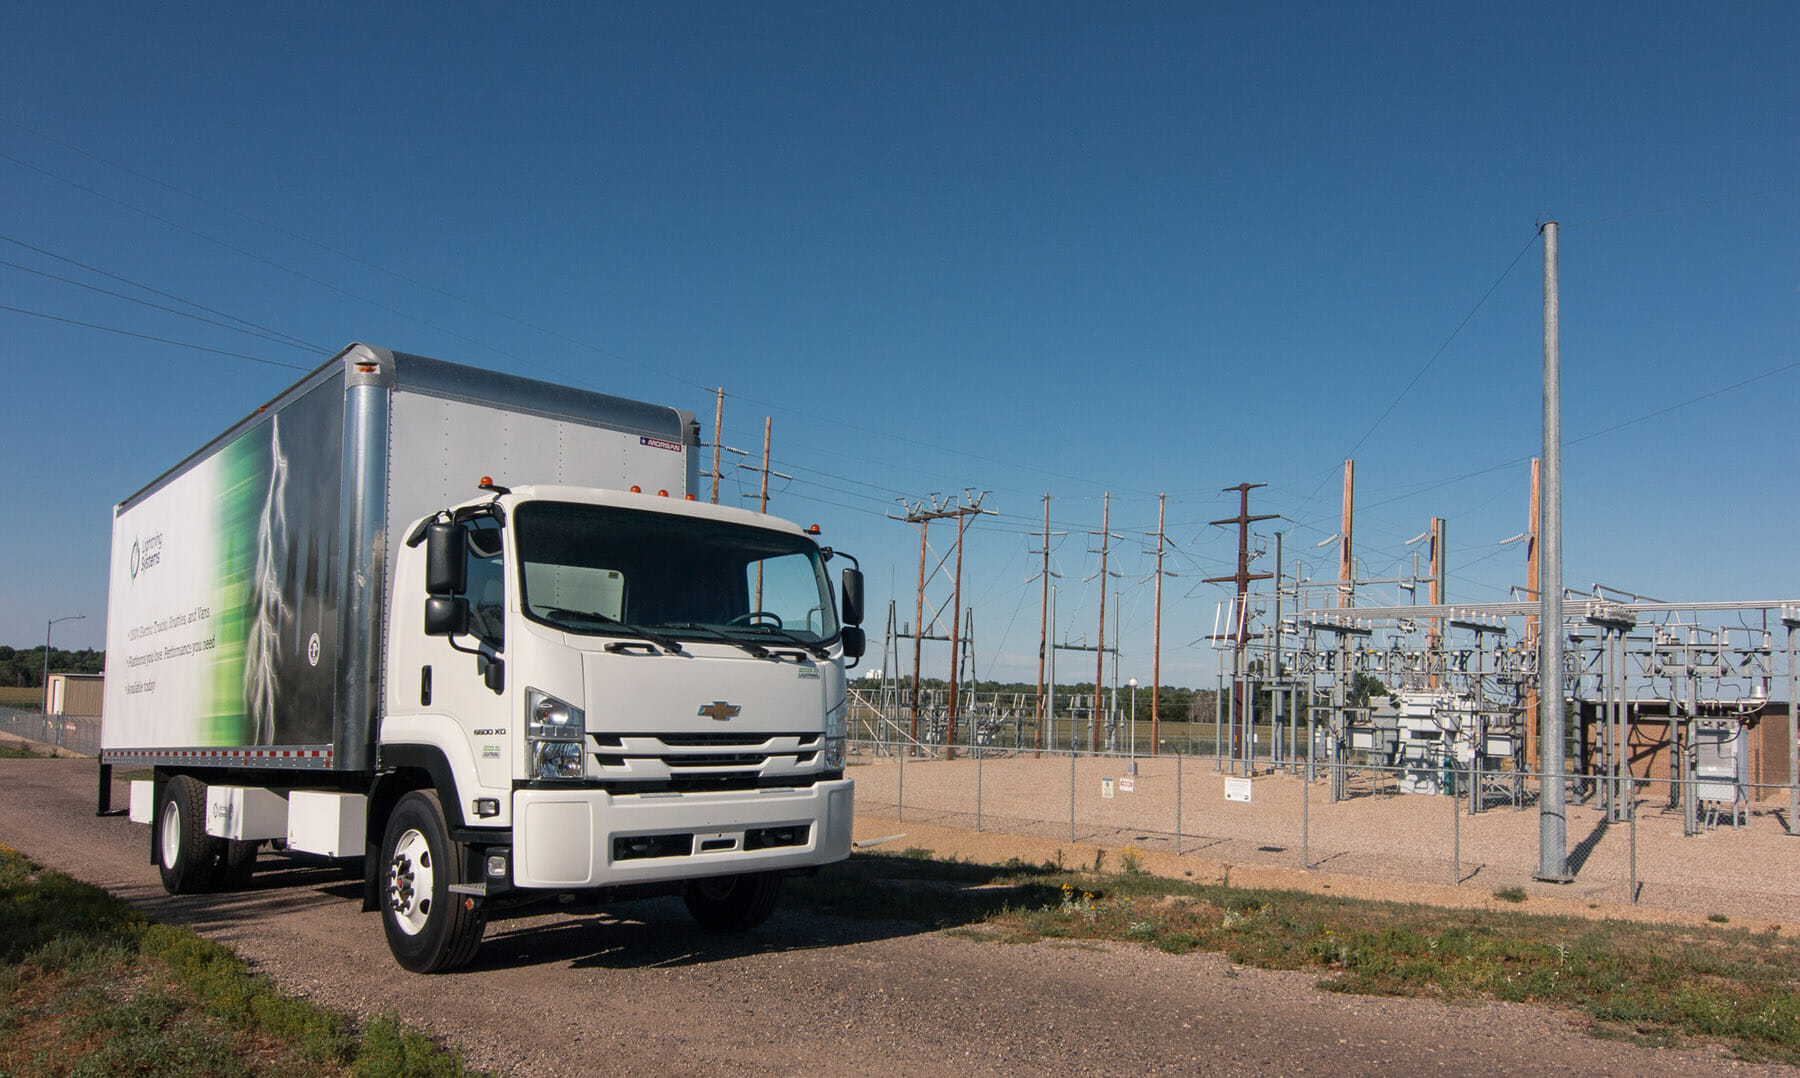 LS GM6500 by an electric substation